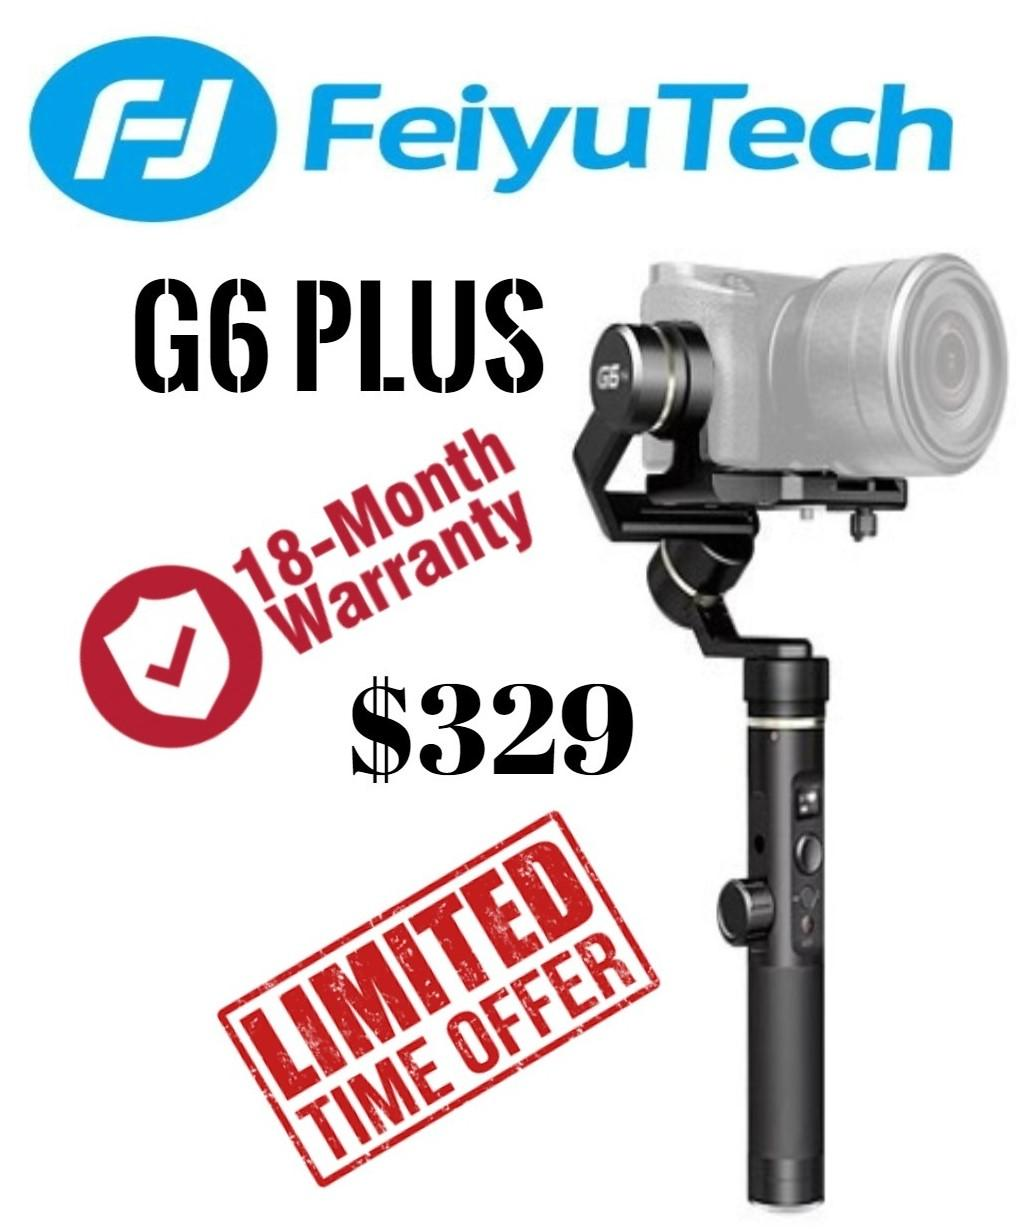 Buy Feiyu Camera Accessories Monopods Lazada Spg 3 Axis Handheld Steady Gimbal For Smartphones Tech G6 Plus 3axis Splash Proof Stabilizer Cameras Mirrorless Gopro